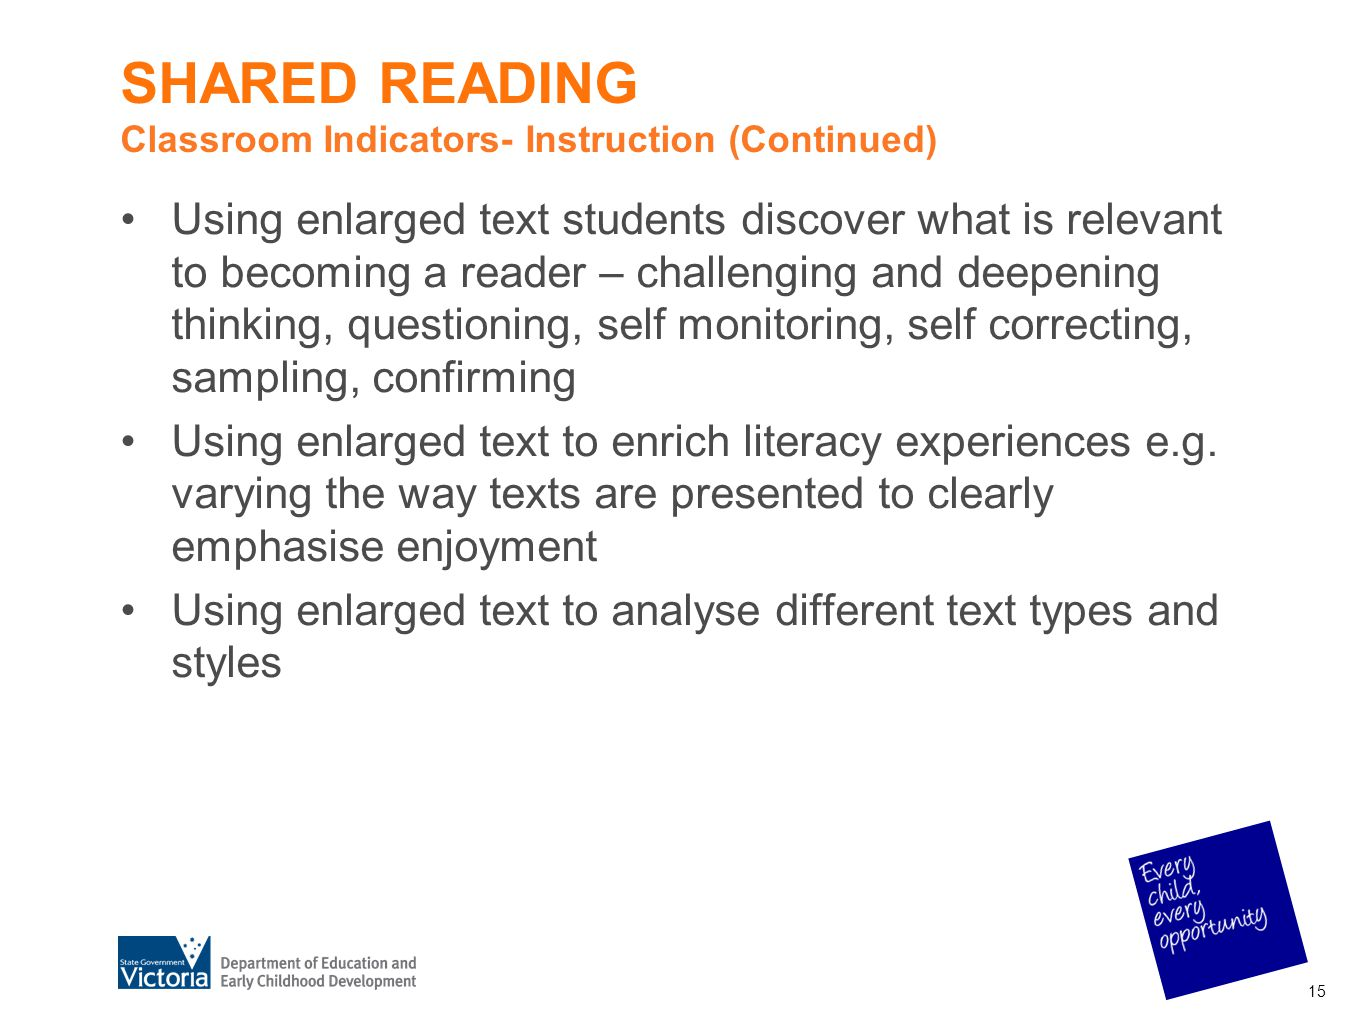 SHARED READING Classroom Indicators- Instruction (Continued)